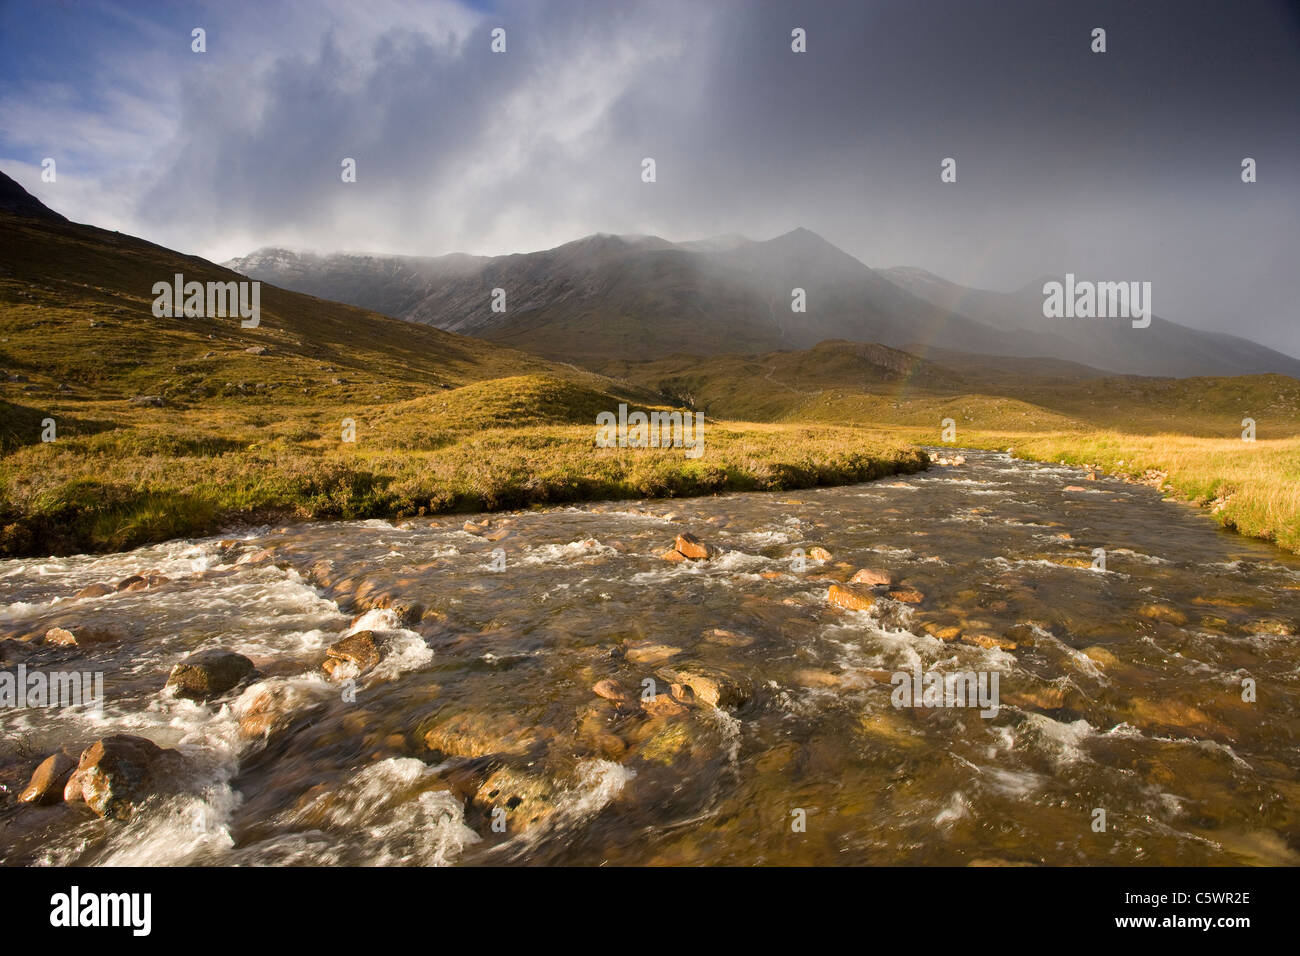 River Torridon, Glen Torridon with Beinn Eighe range beyond. Torridon, Wester Ross, Scotland, Great Britain. - Stock Image